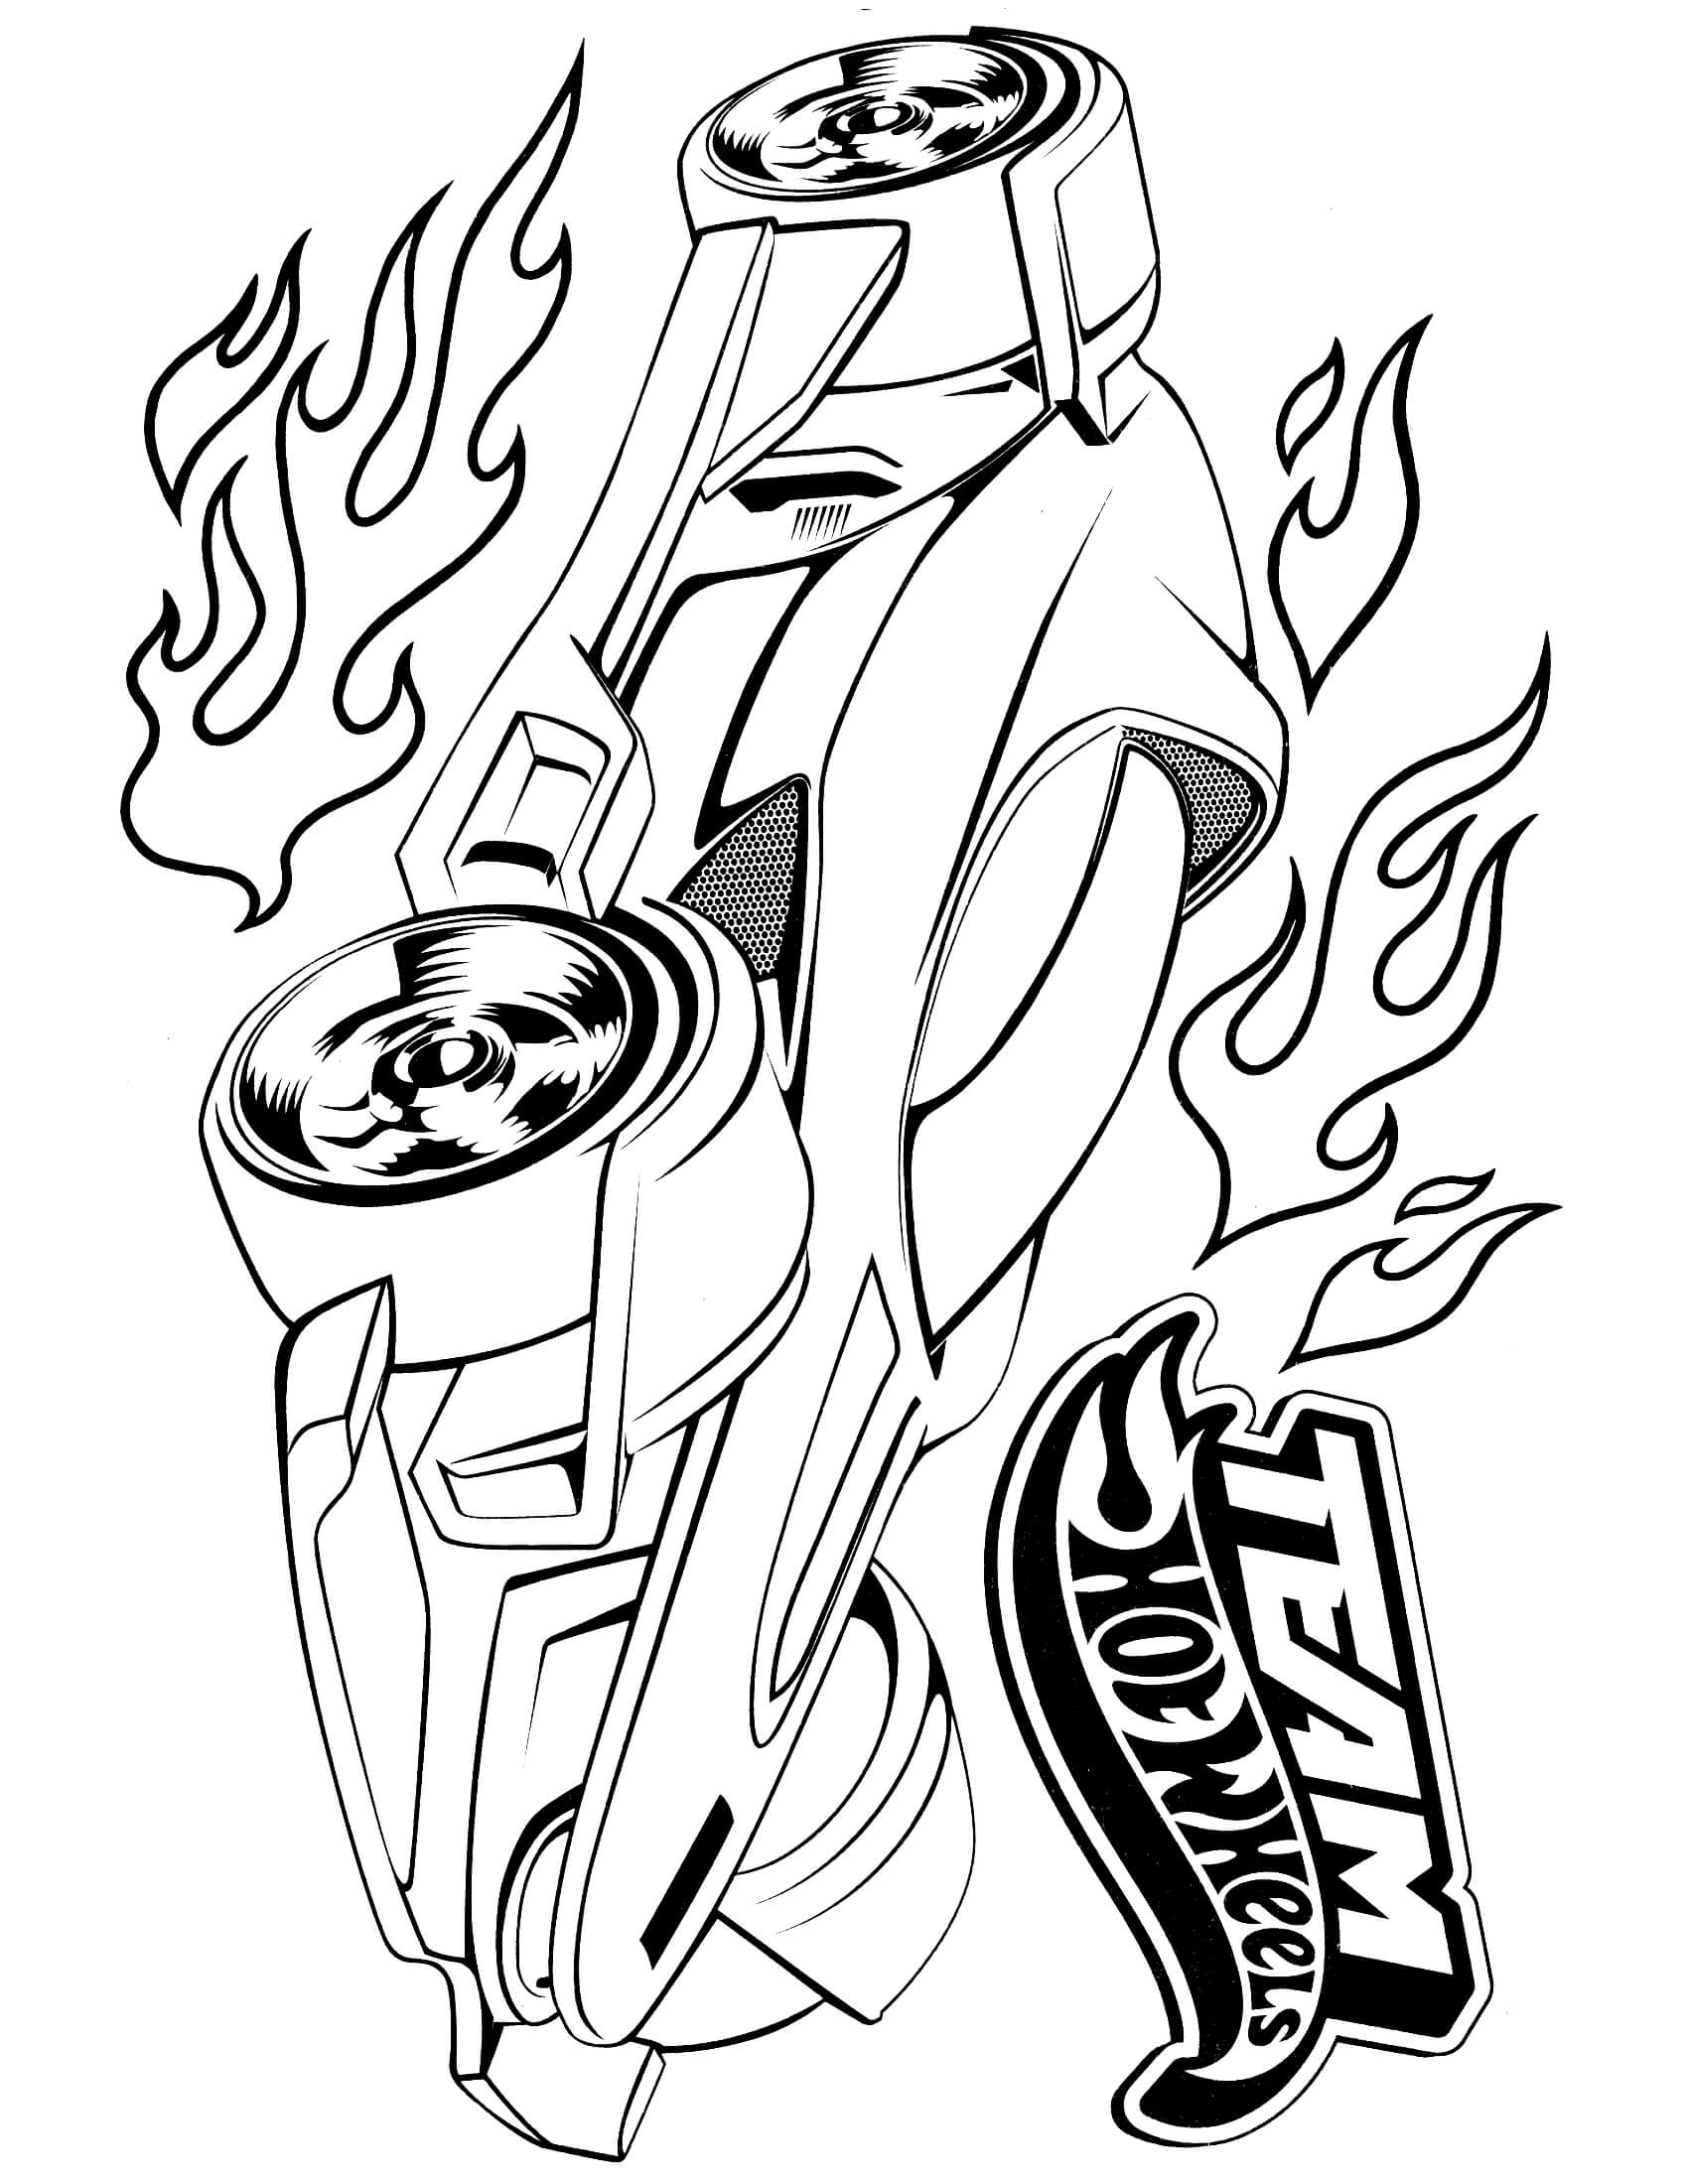 hotwheels coloring pages hot wheels 59 coloringcolorcom coloring hotwheels pages